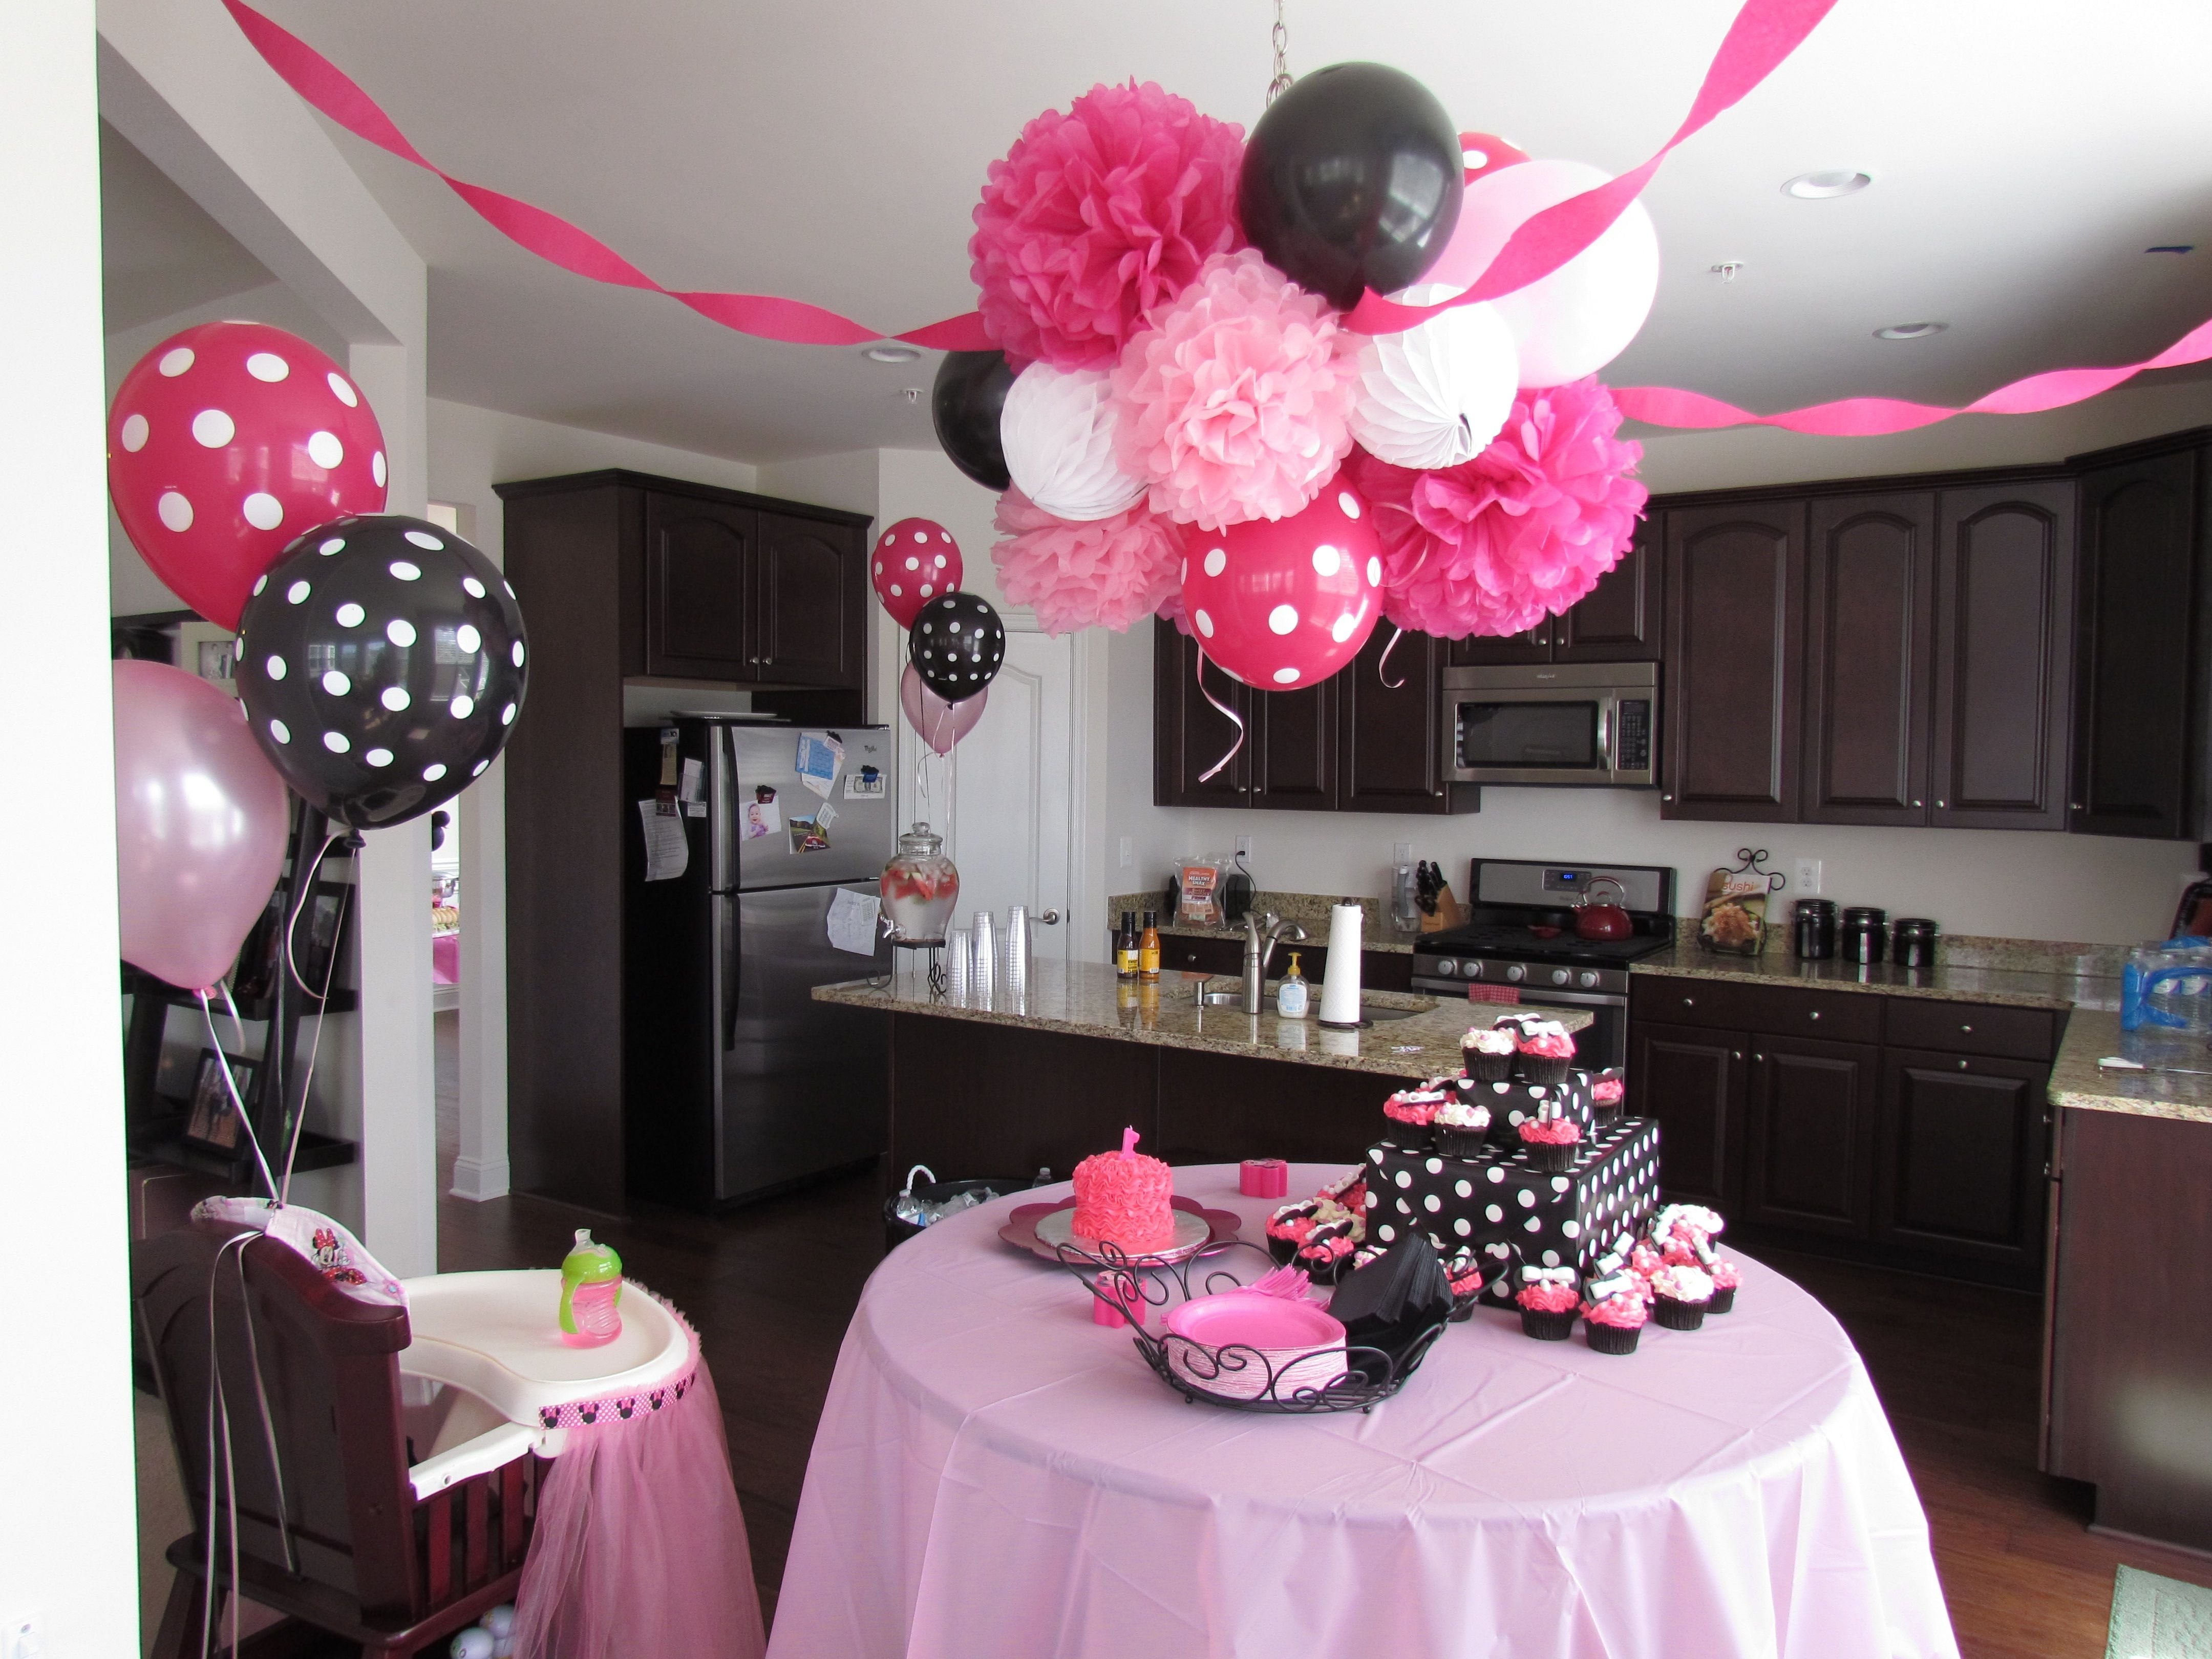 10 Ideal Minnie Mouse Party Ideas Pinterest minnie mouse decorations minnie mouse party pinterest minnie